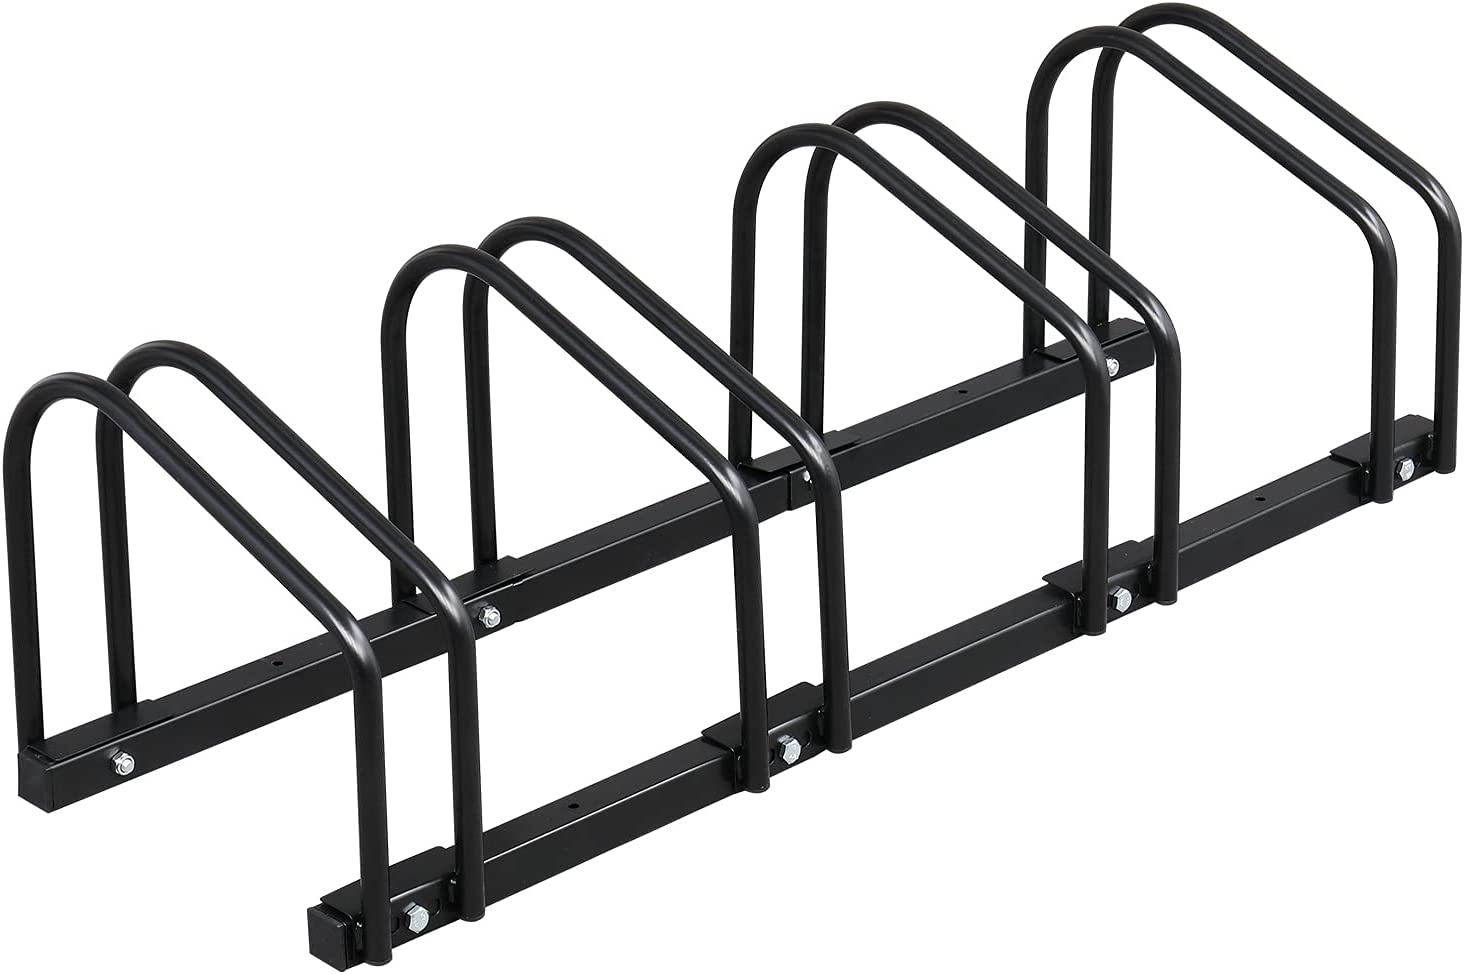 Ground Kansas Selling and selling City Mall Parking 4 Frame Bicycle Black Rack